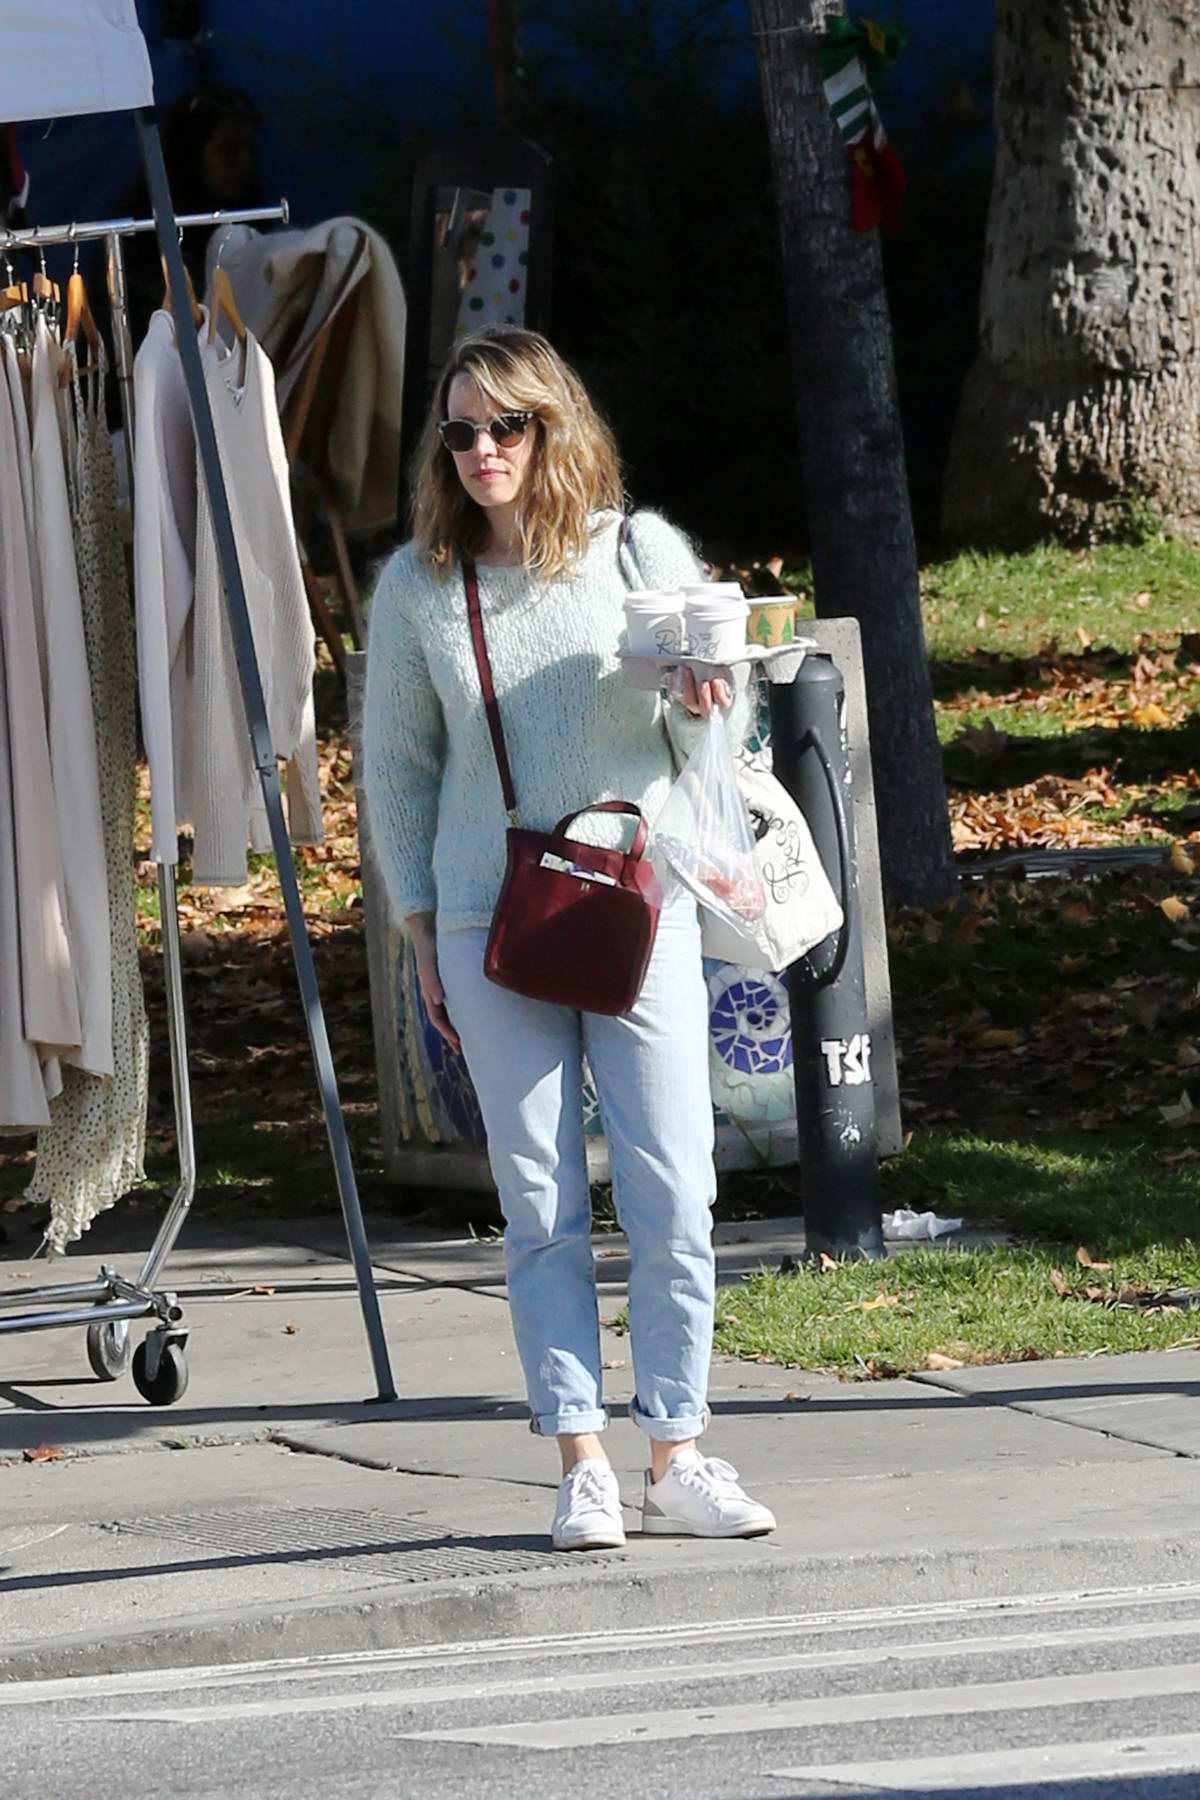 Rachel McAdams picks up some flowers and coffees while shopping at the flea market in Los Angeles